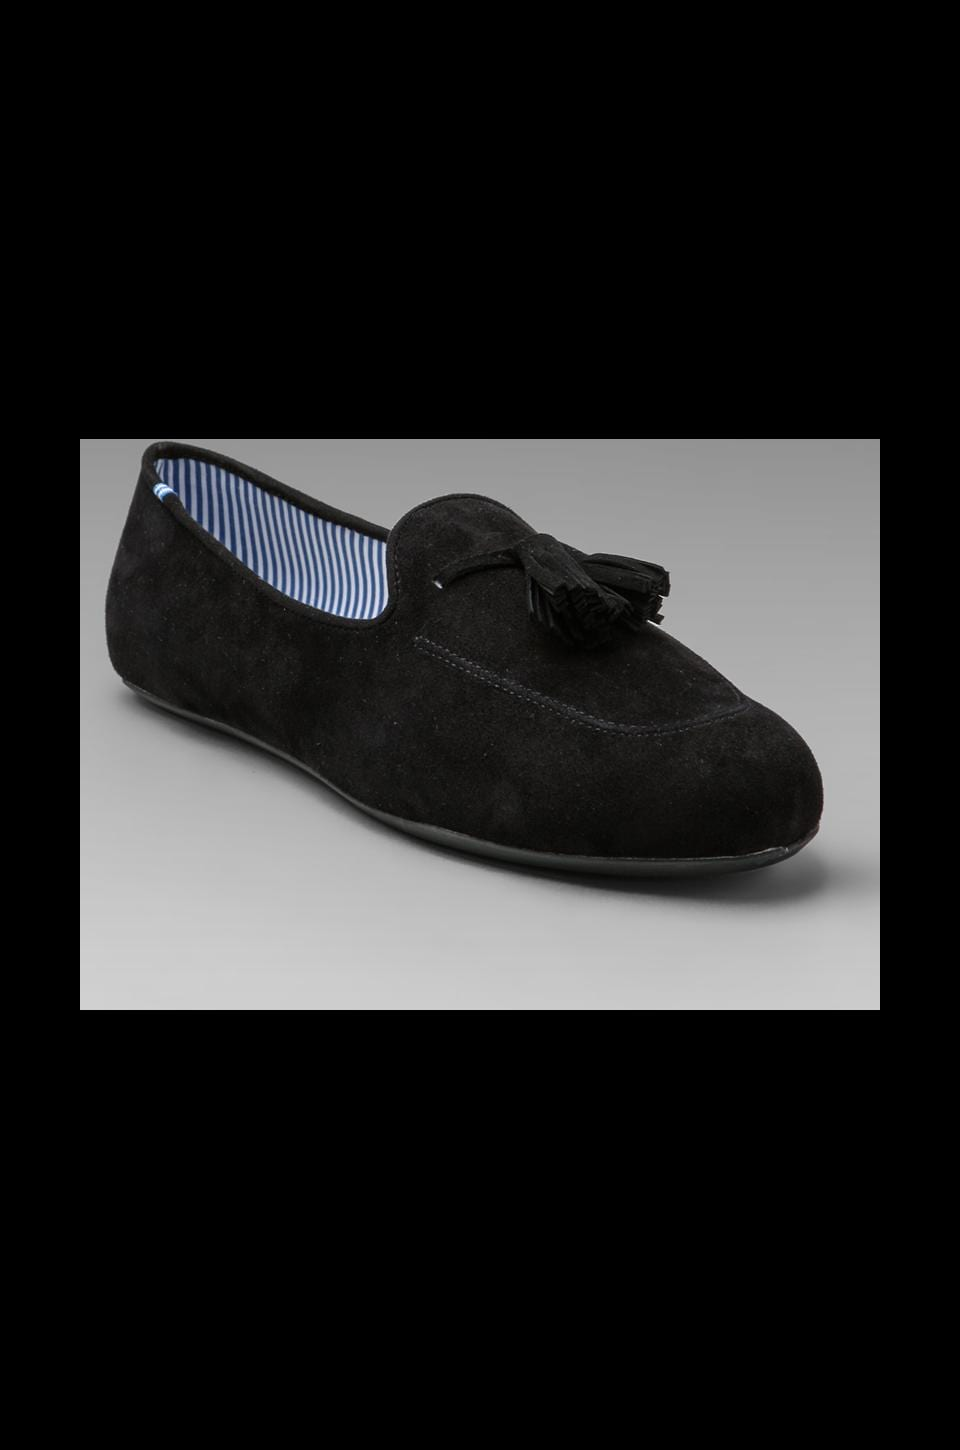 Charles Philip Shanghai Ronald Slipper in Black/Black